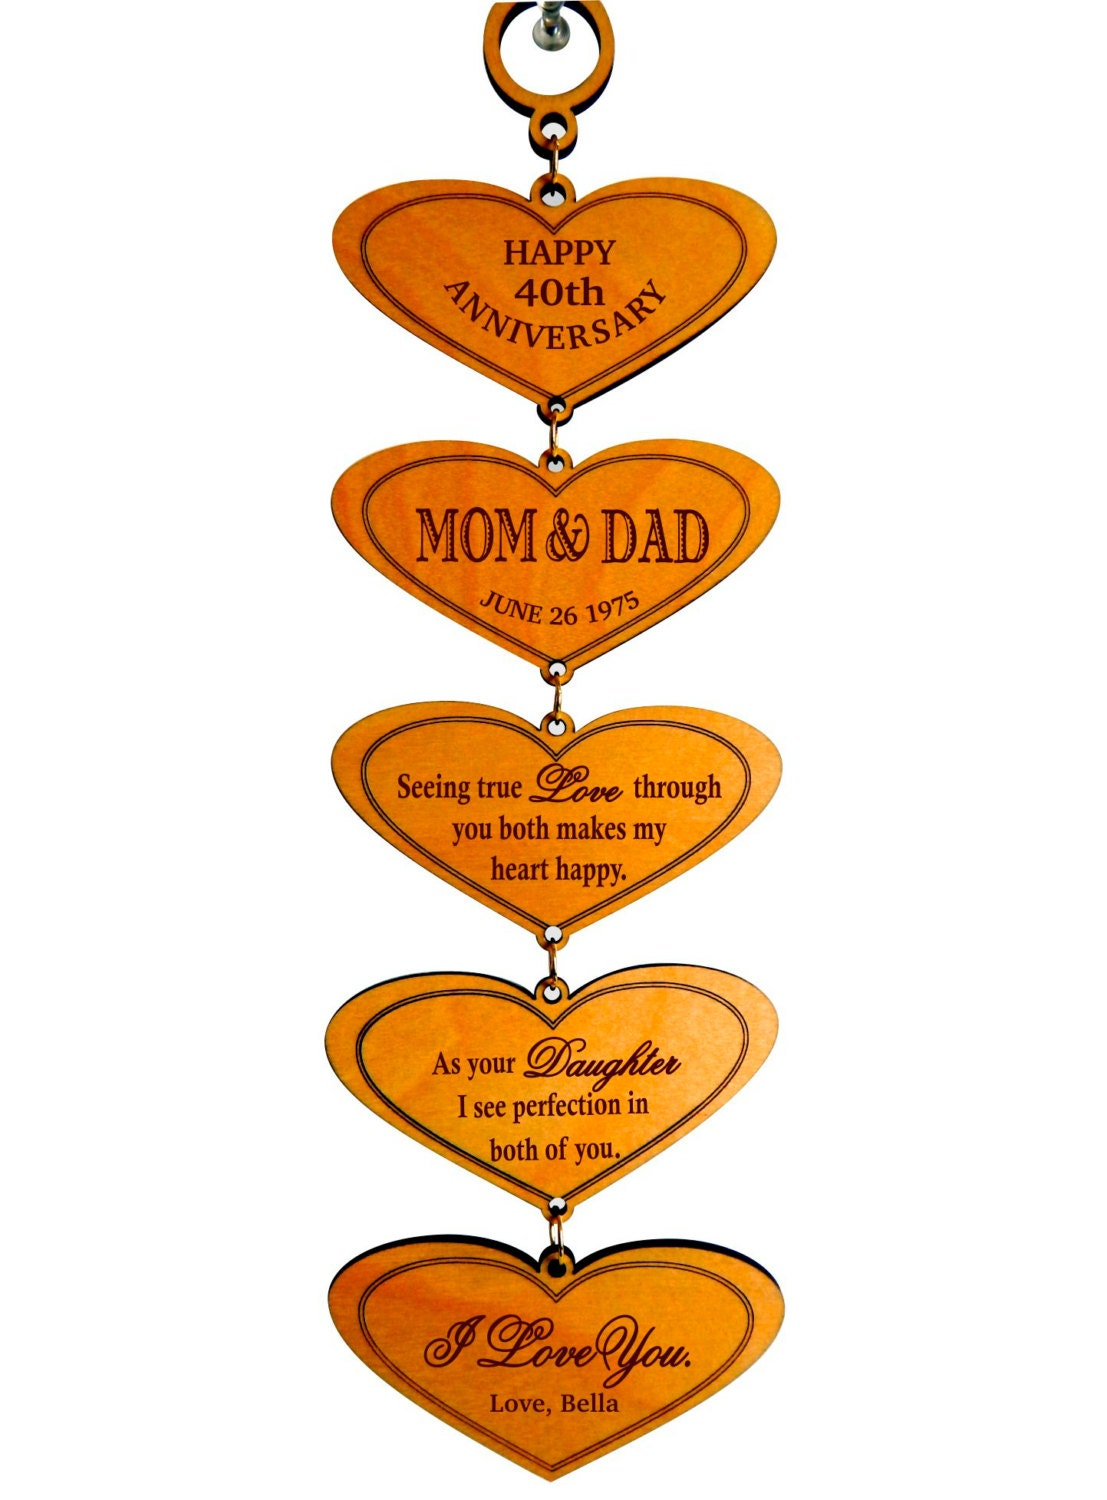 Wedding Anniversary Gift For New Mom : 40th Wedding Anniversary Gift for Mom and Dad from